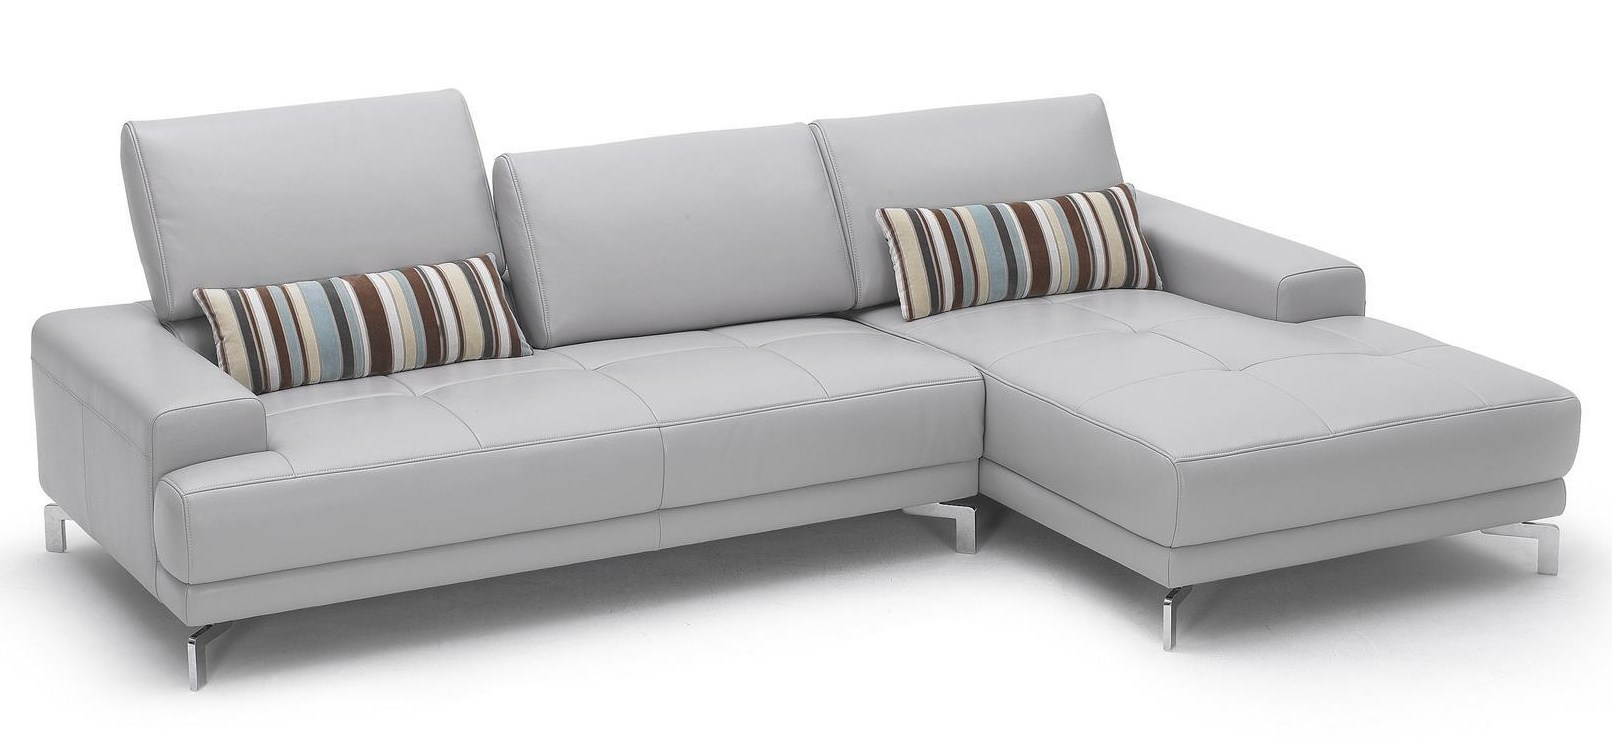 Customs Made Couches By Green Leaf Furniture Manufactures